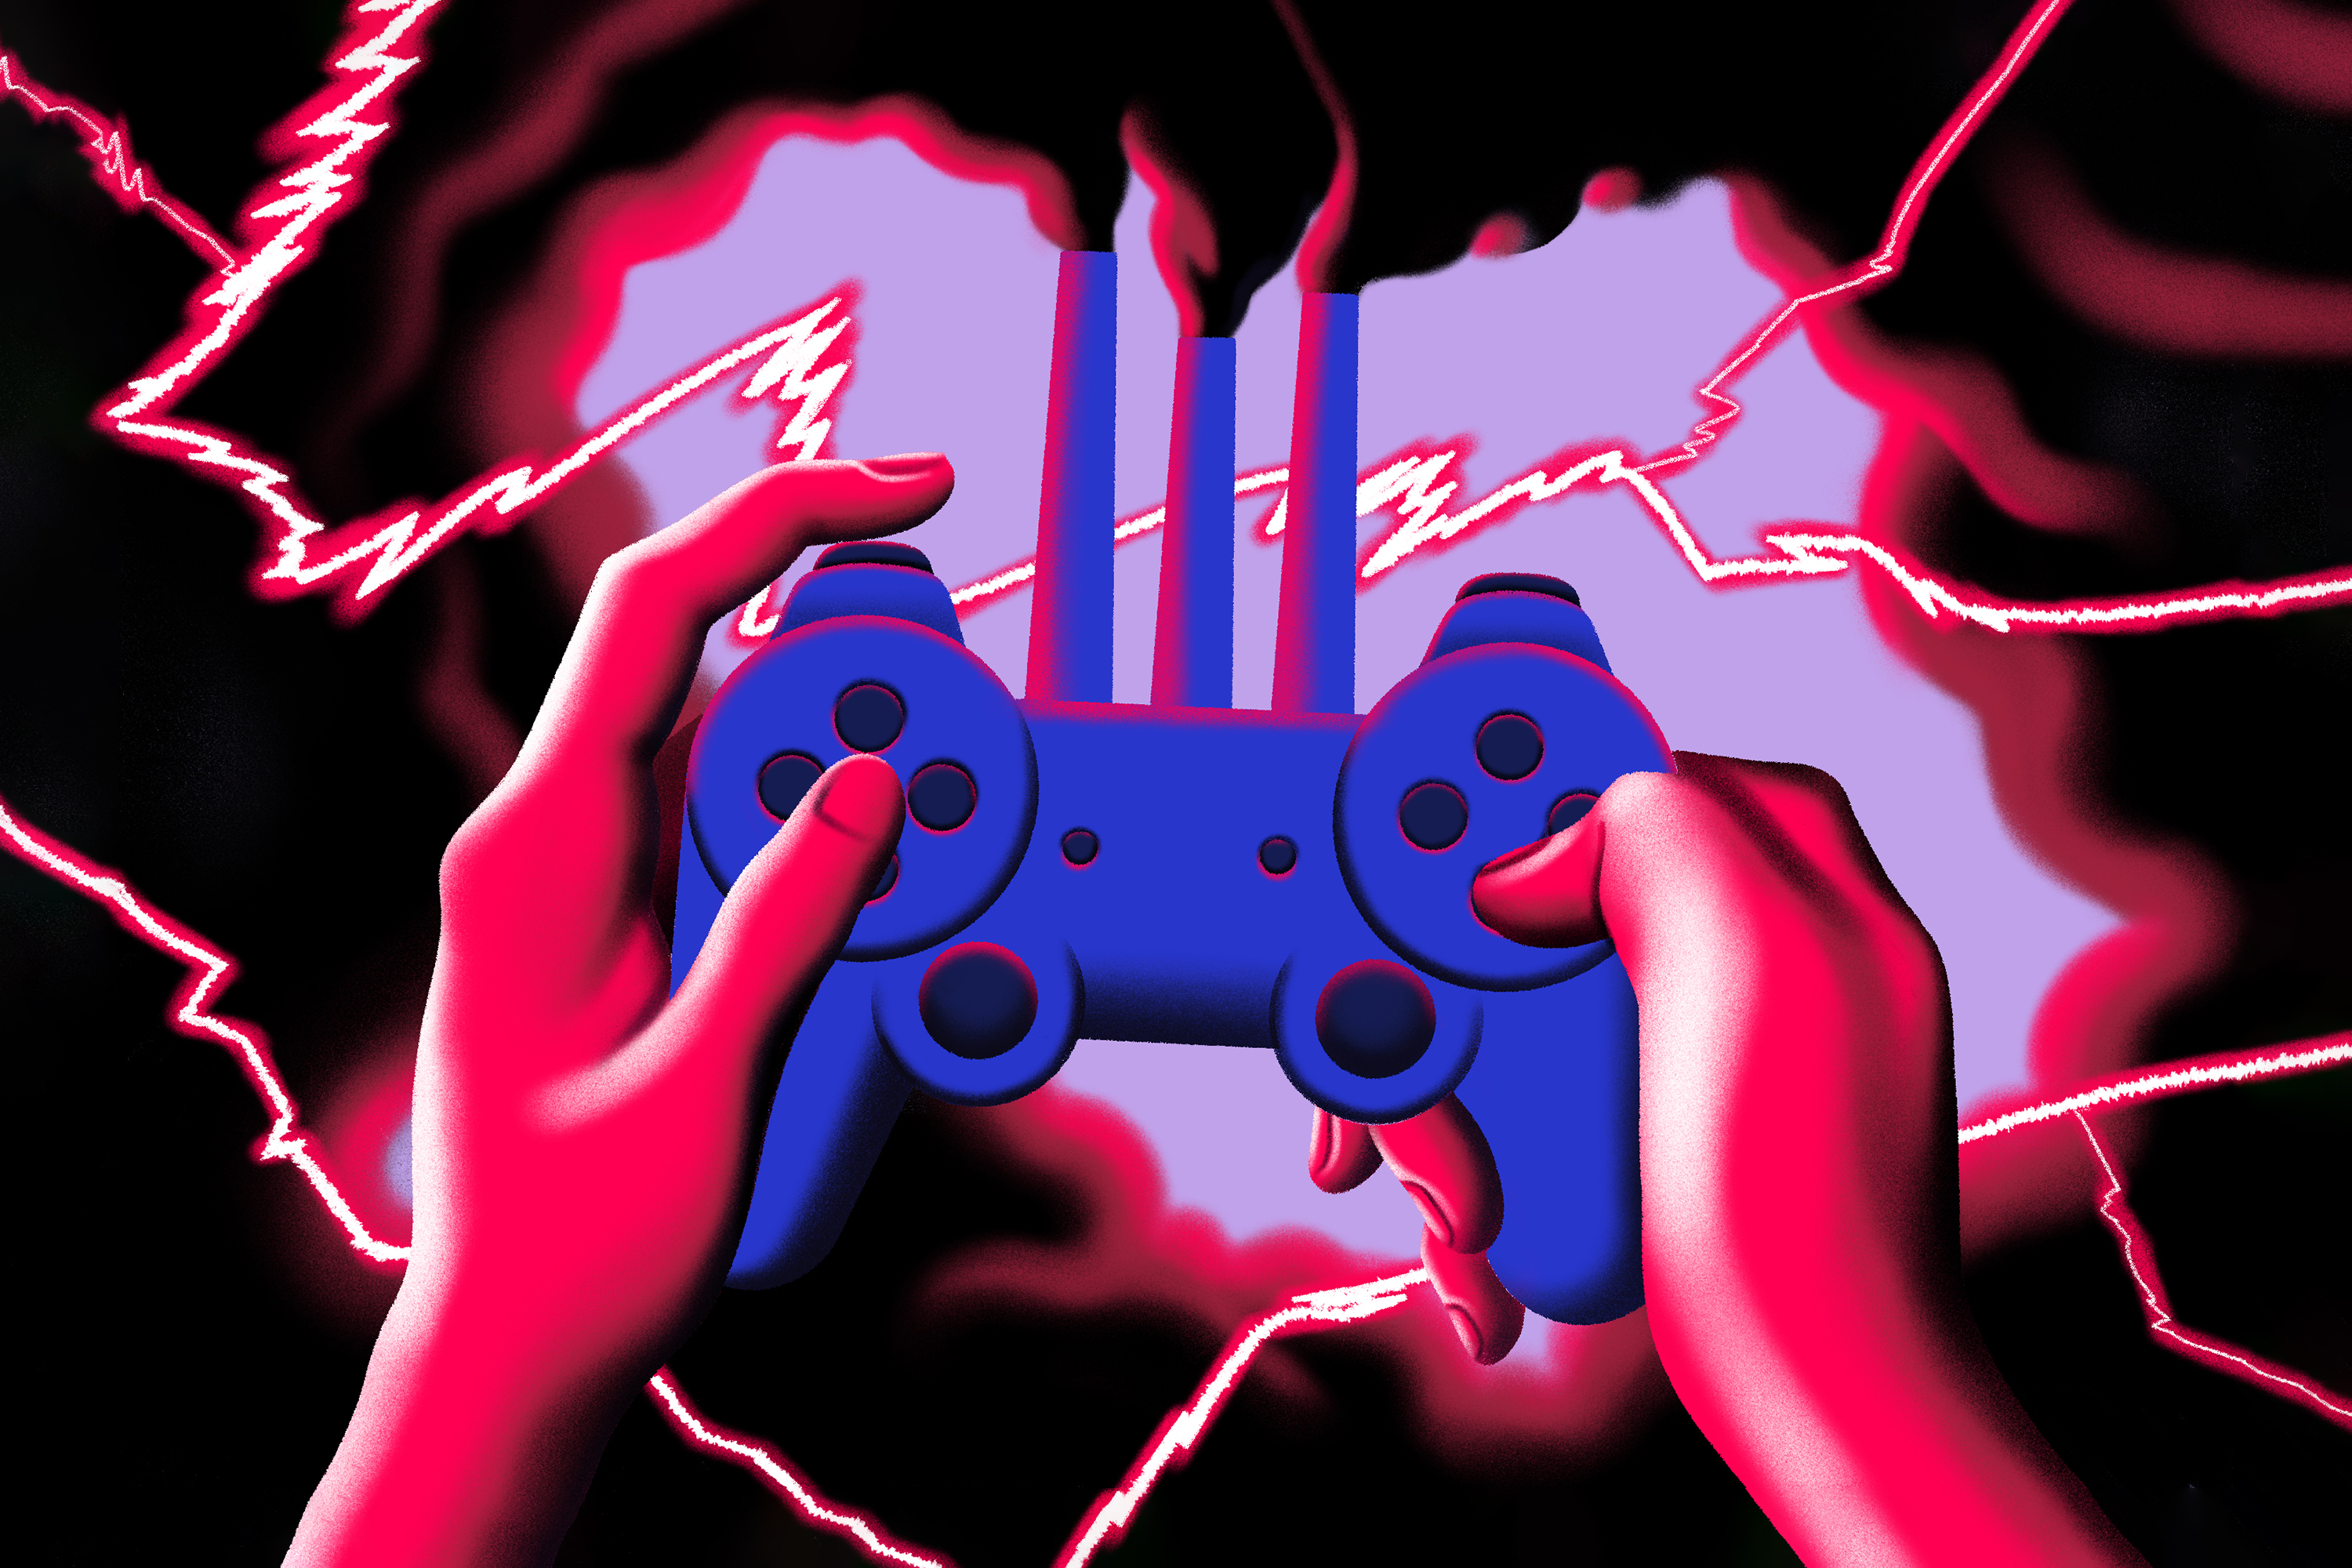 Two hands hold a controller with smoke stacks emanating from the top of the device. Black smoke spews out the top, flooding the stormy air with dark clouds. Neon pink lightening breaks the sky. Illustration.